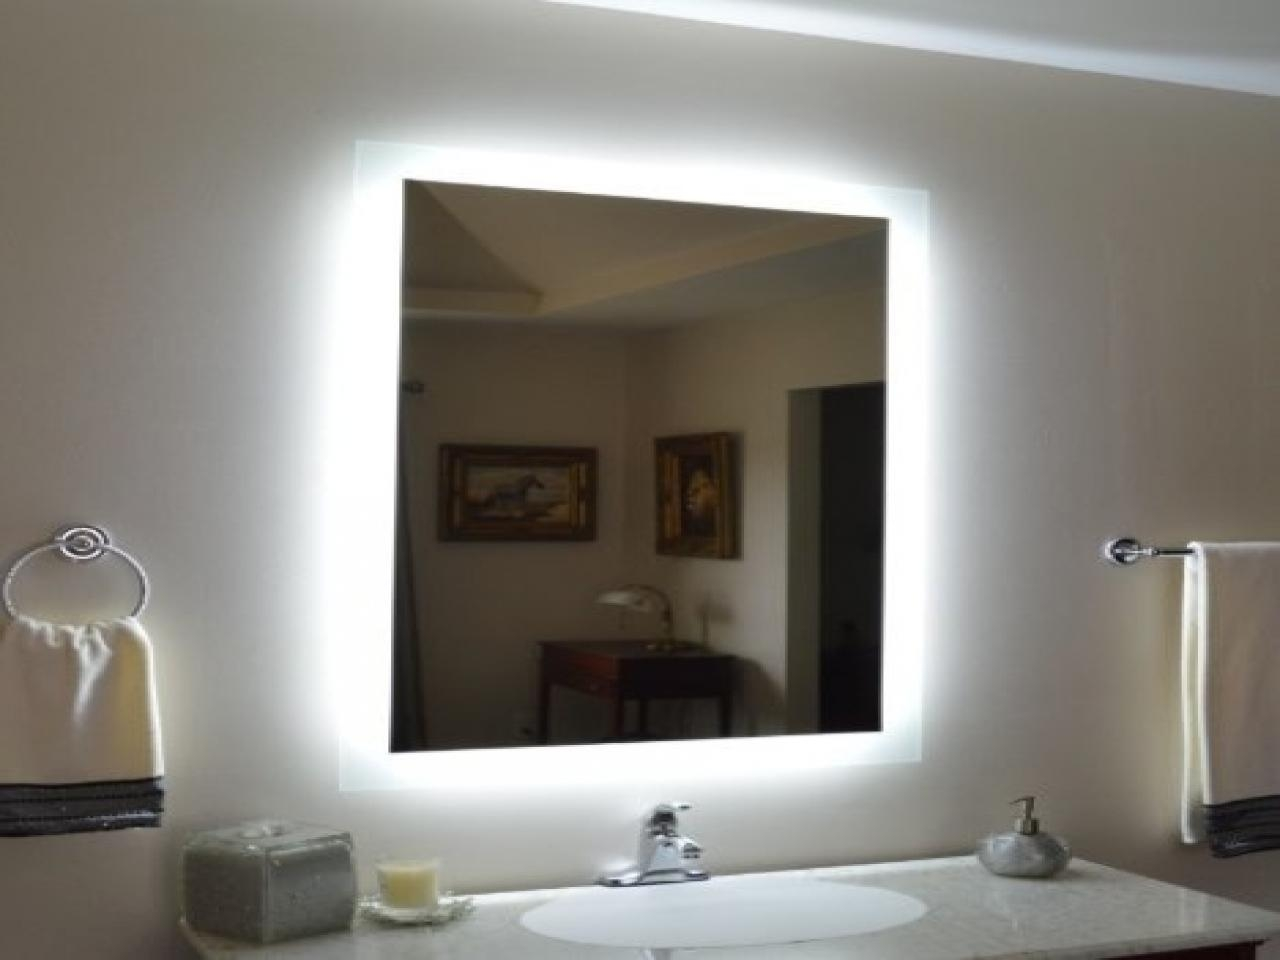 Halo Wide Led Light Bathroom Mirror: Led Lit Bathroom Mirrors